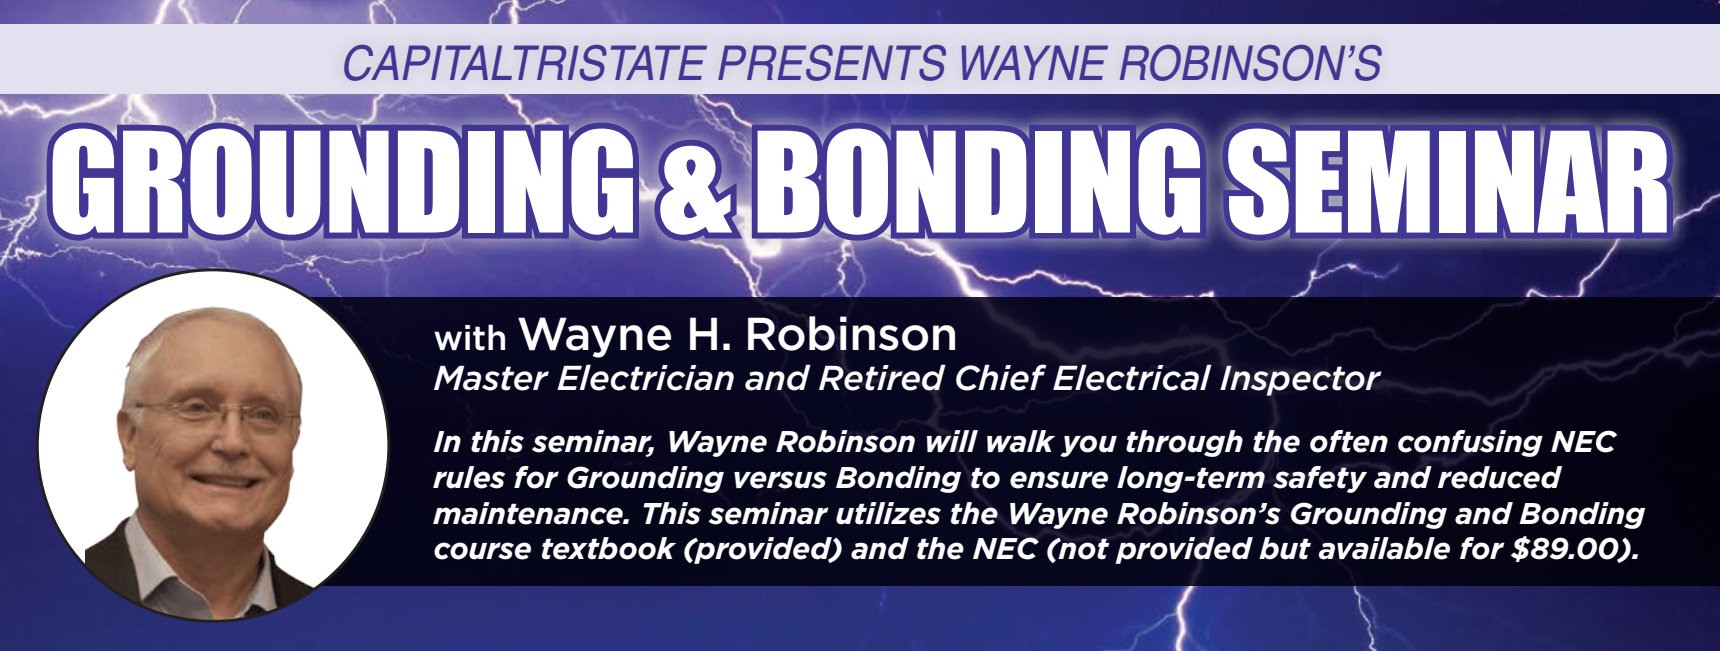 Grounding and Bonding Seminar - Apr 18 & 19 - Cumberland